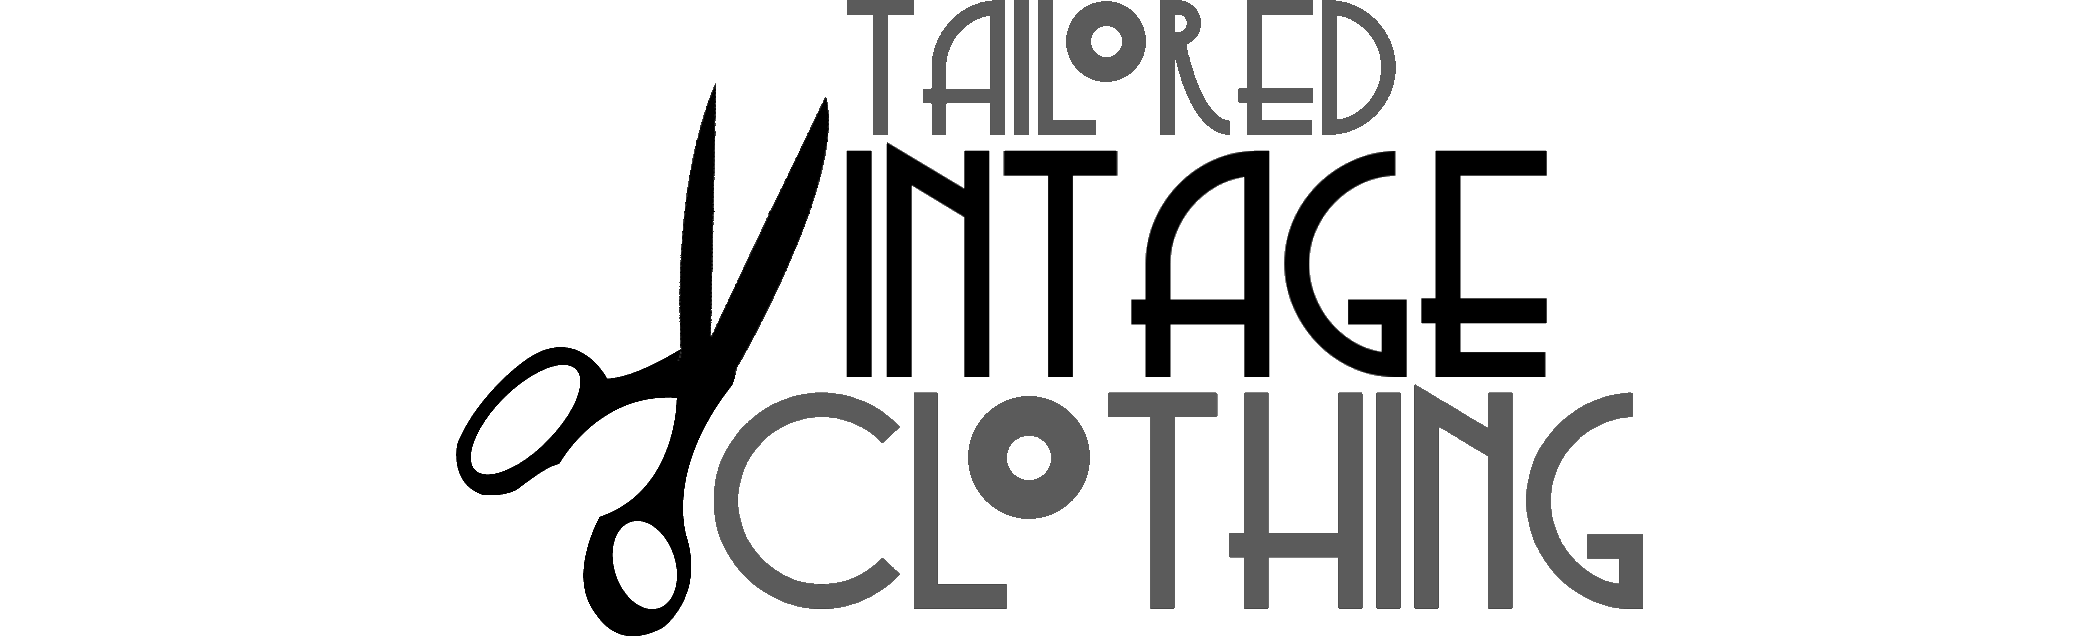 Vintage Tailored Clothing